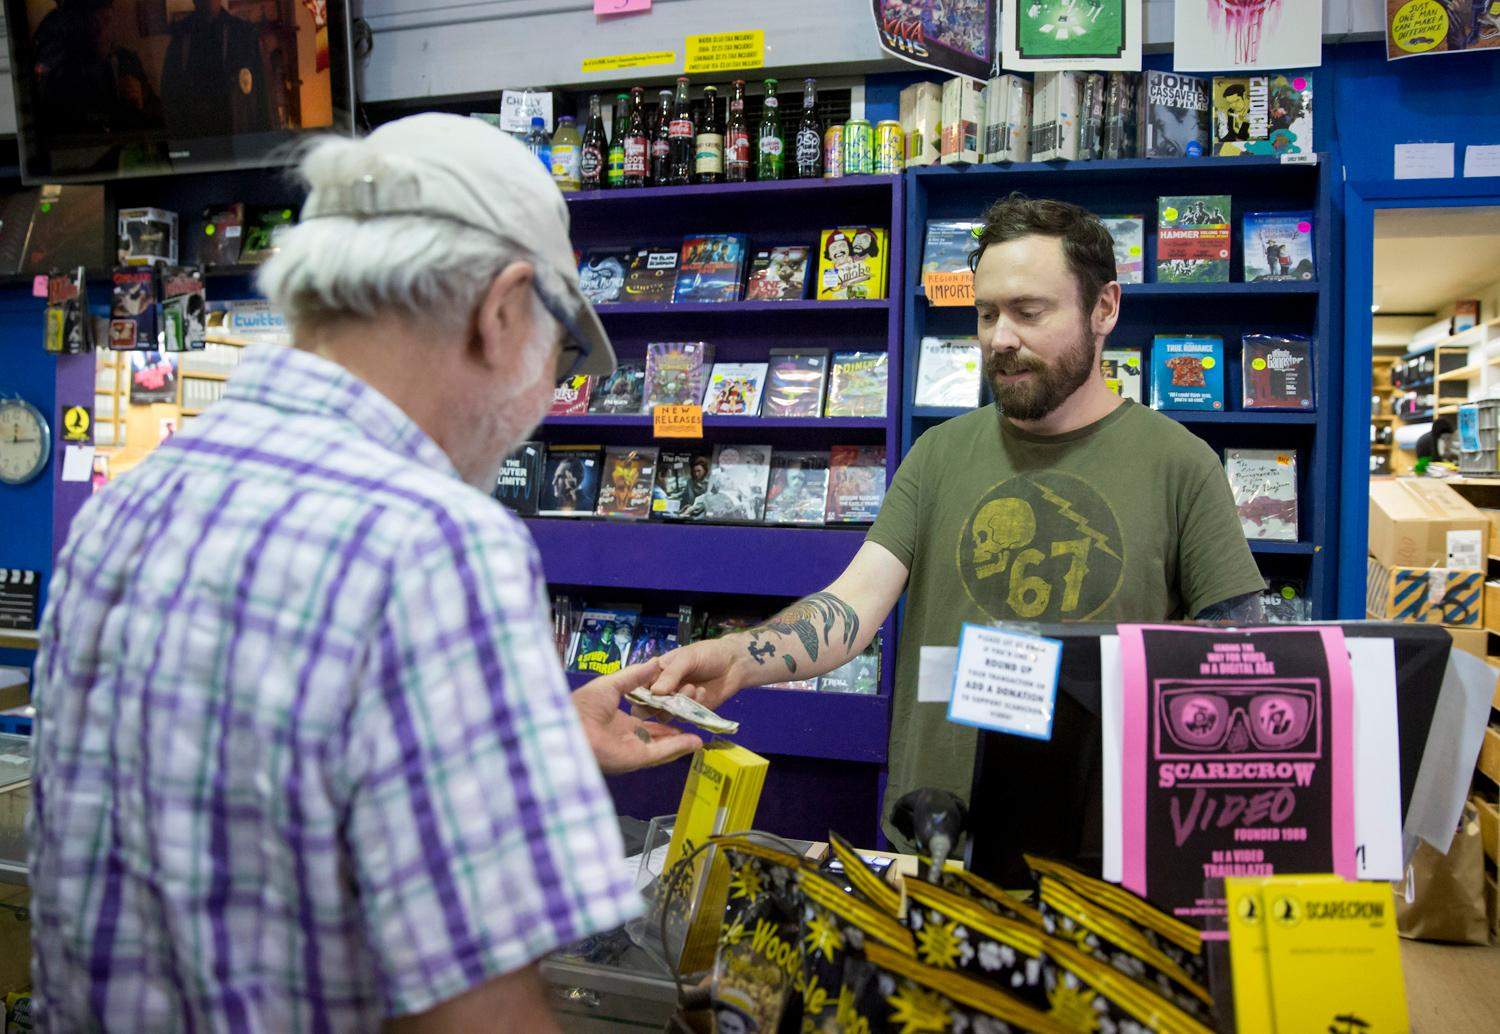 <p>Day Manager Jason Dodson helps a customer at Scarecrow Video, the film rental store that has been serving Seattle for 30 years. In 2014, the collection had grown to become such a significant archive that a non-profit was formed. The store continues to grow at a rate of 3,000-5,000 titles each year, representing 129 countries and over 126 languages. (Sy Bean / Seattle Refined)</p>